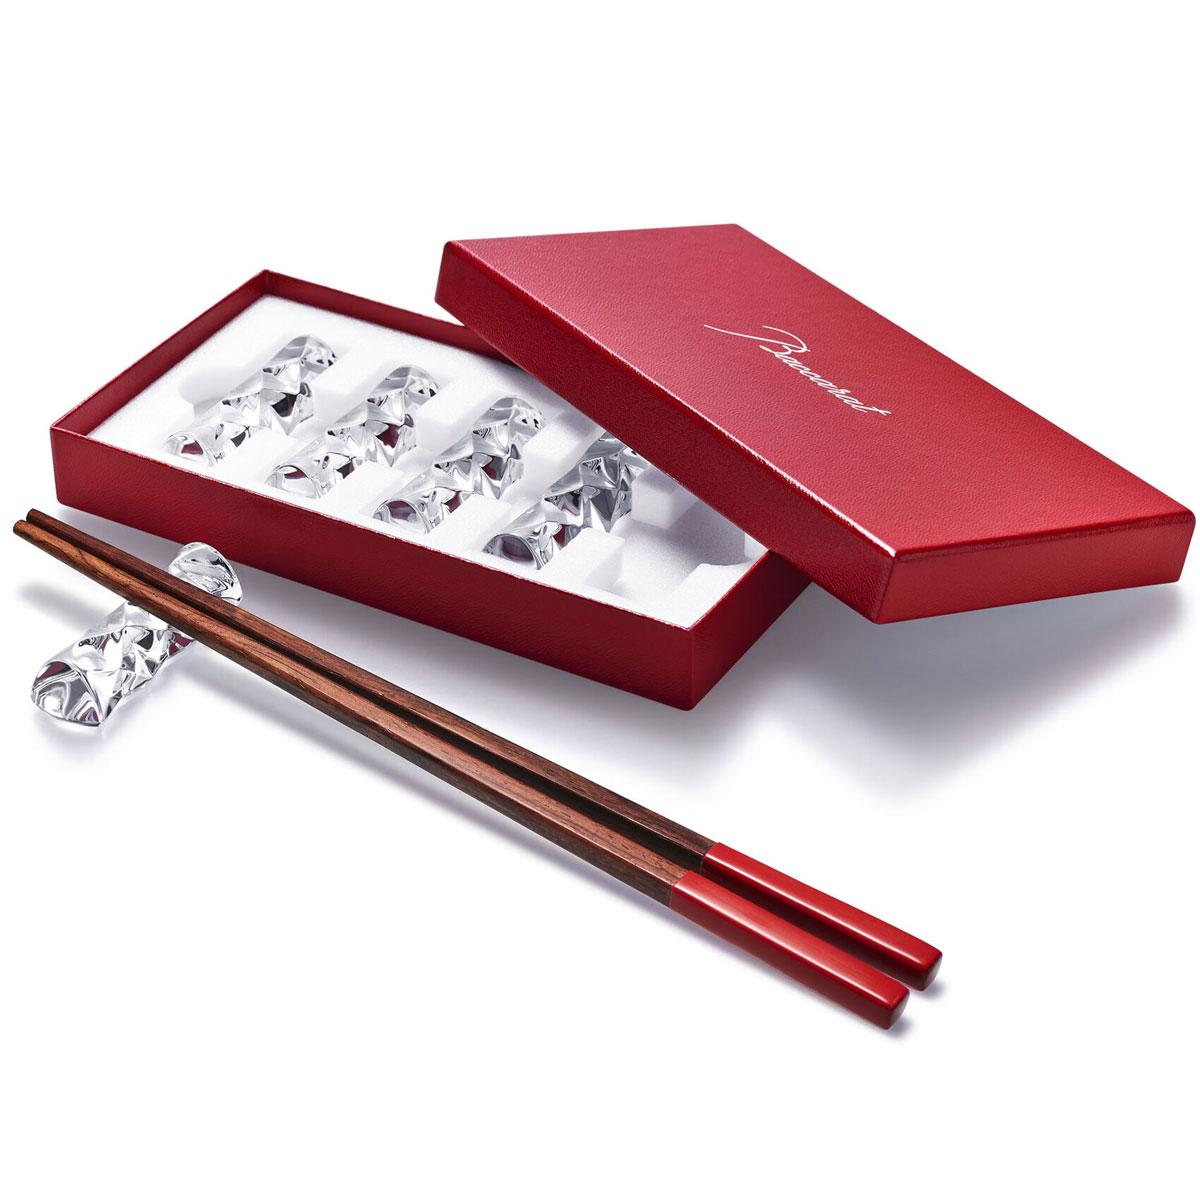 Baccarat Swing Chopstick Stand Set of 5